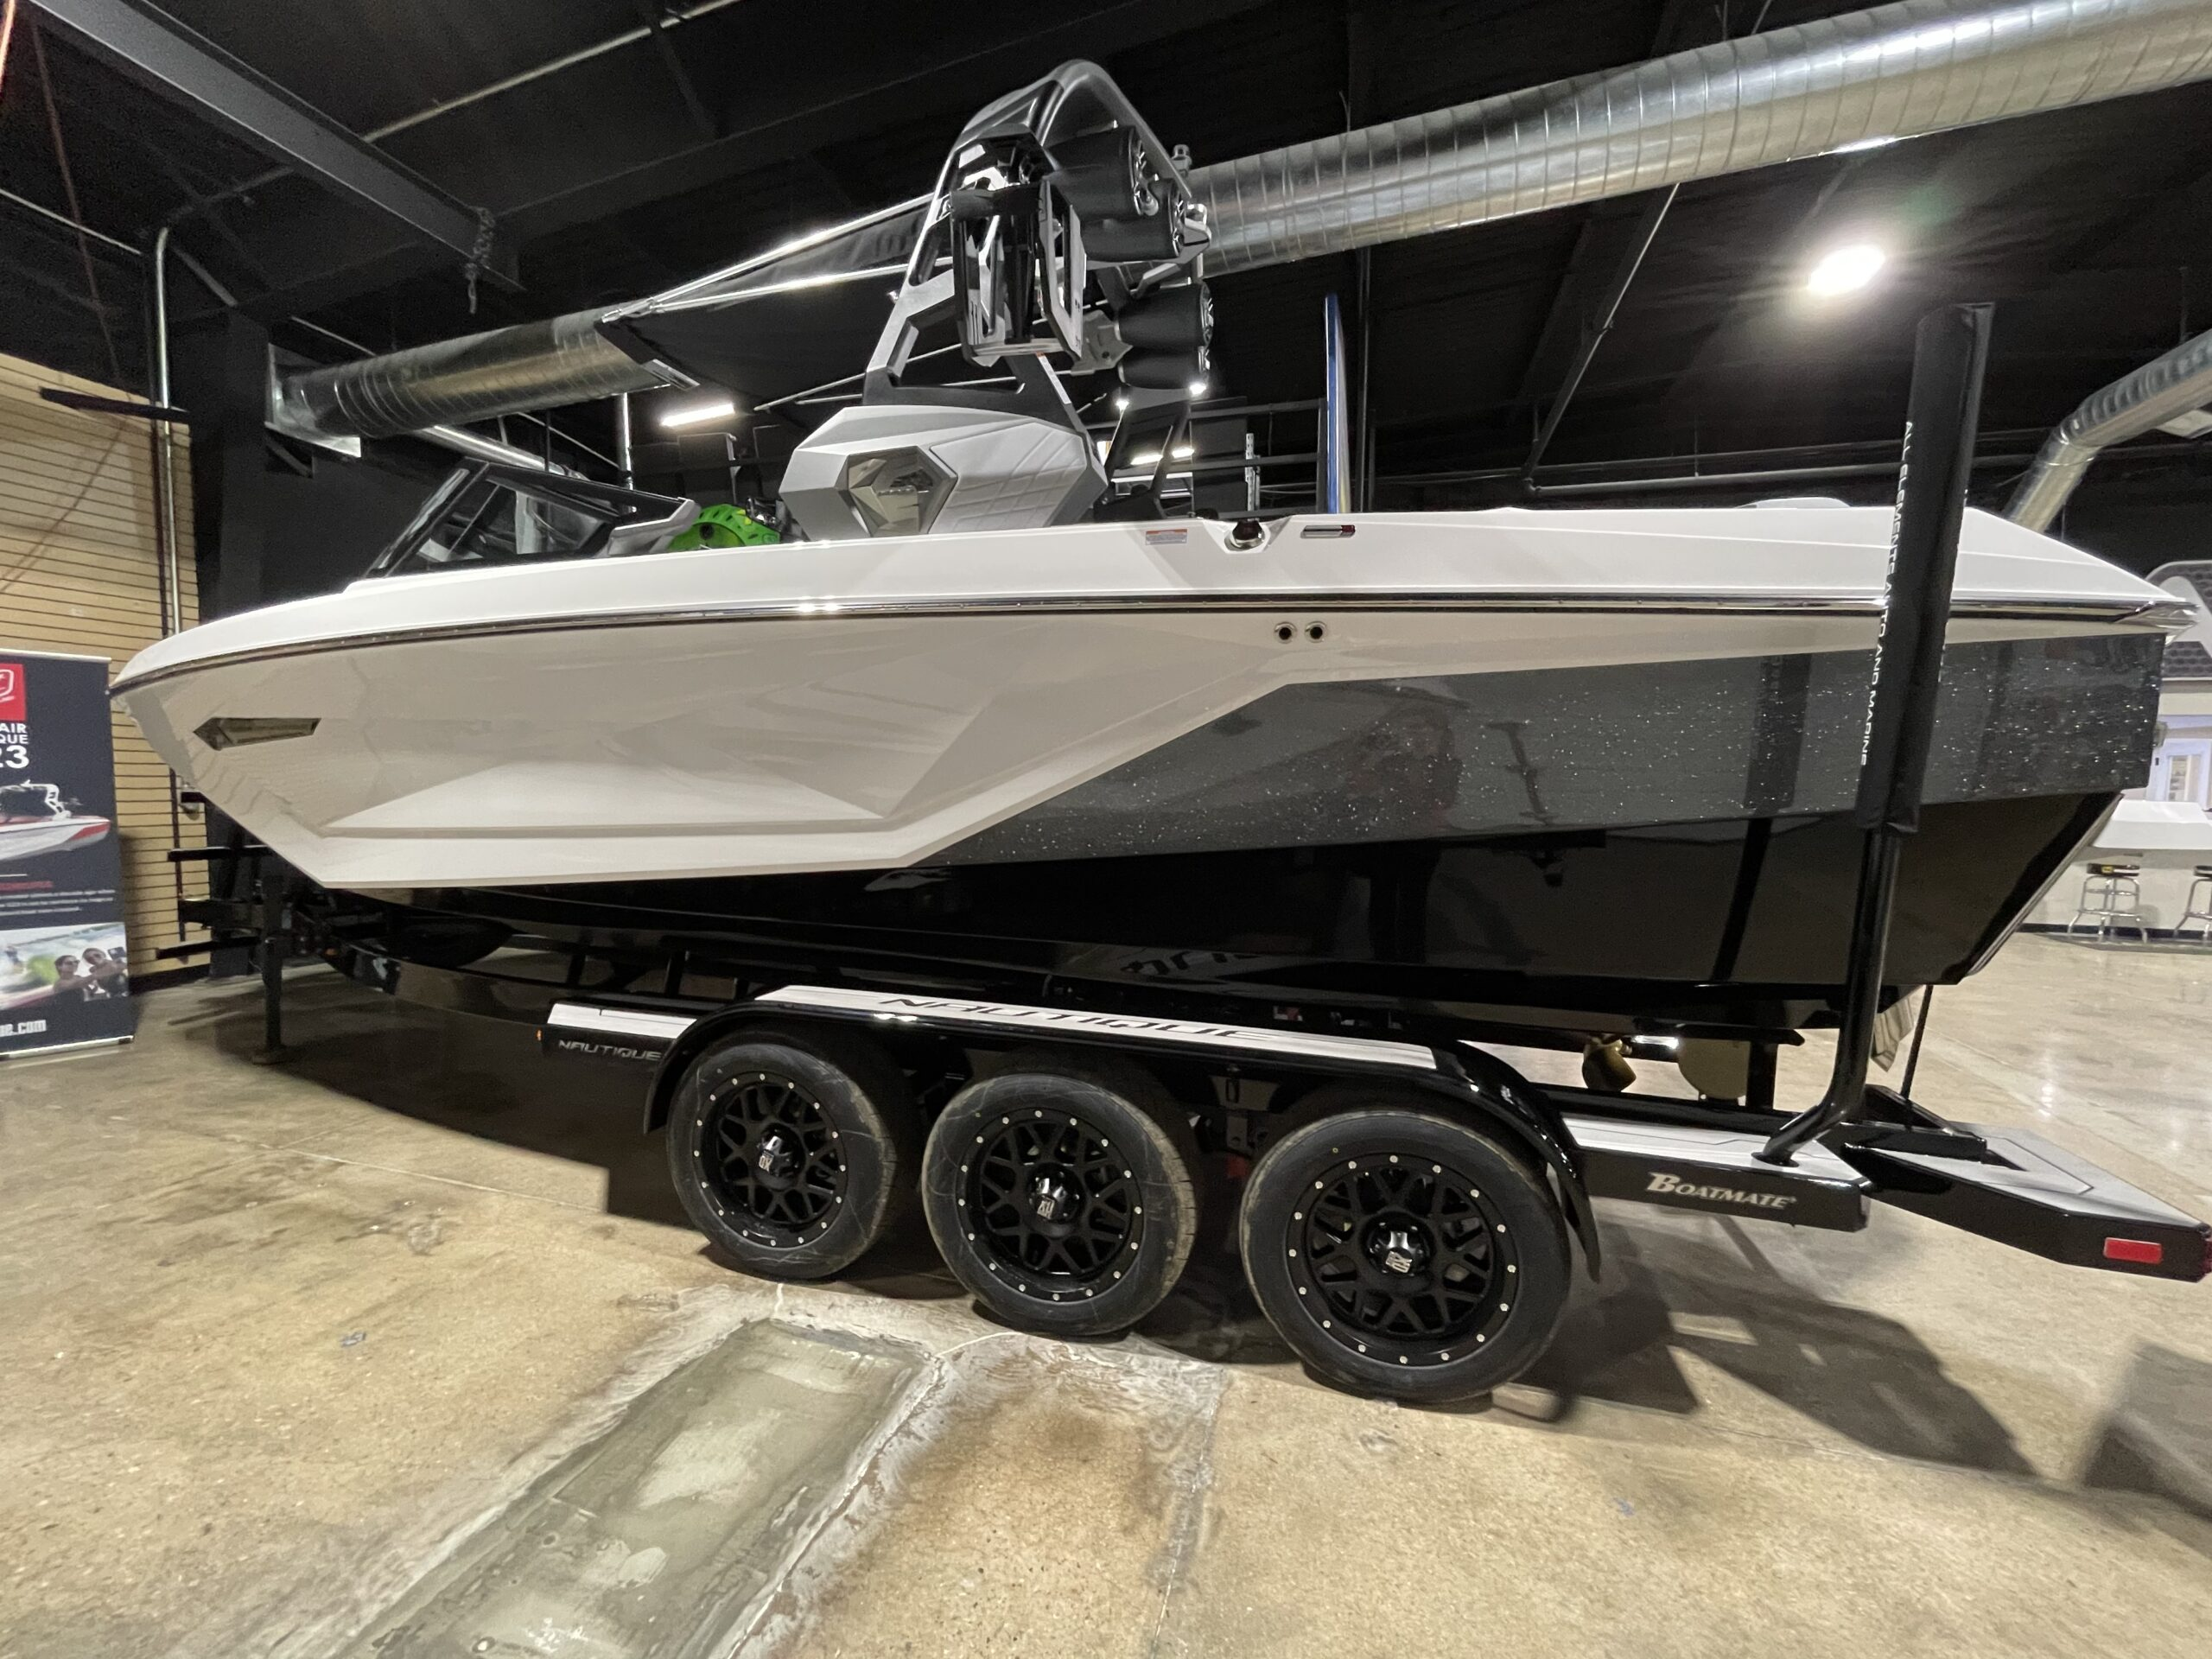 2019 Super Air Nautique G23 for sale in Wichita, Kansas at All Elements Auto and Marine